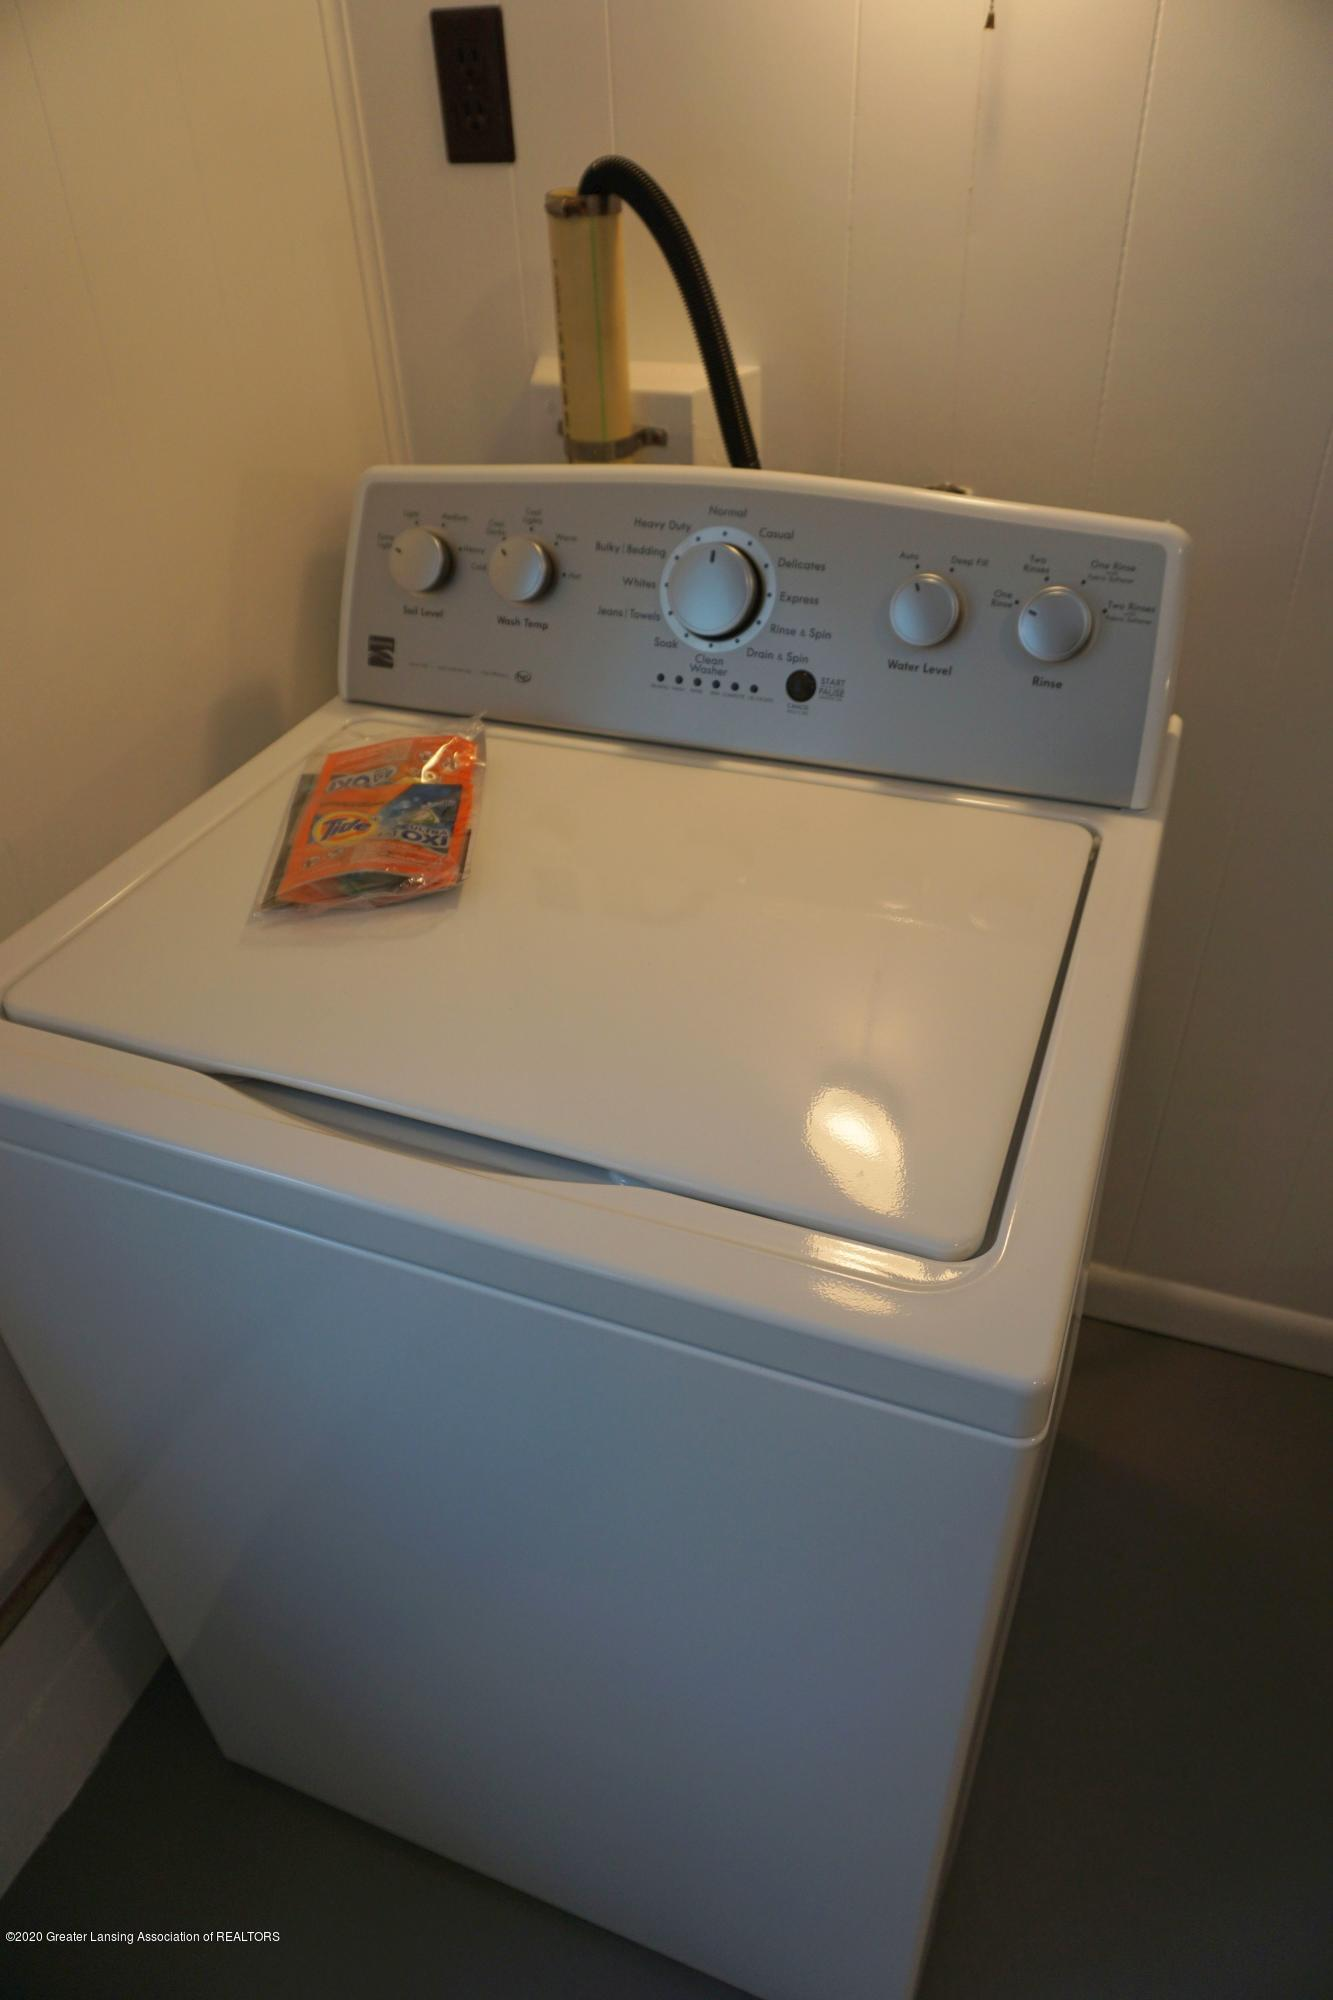 219 W 1st N St - New Washer - 26